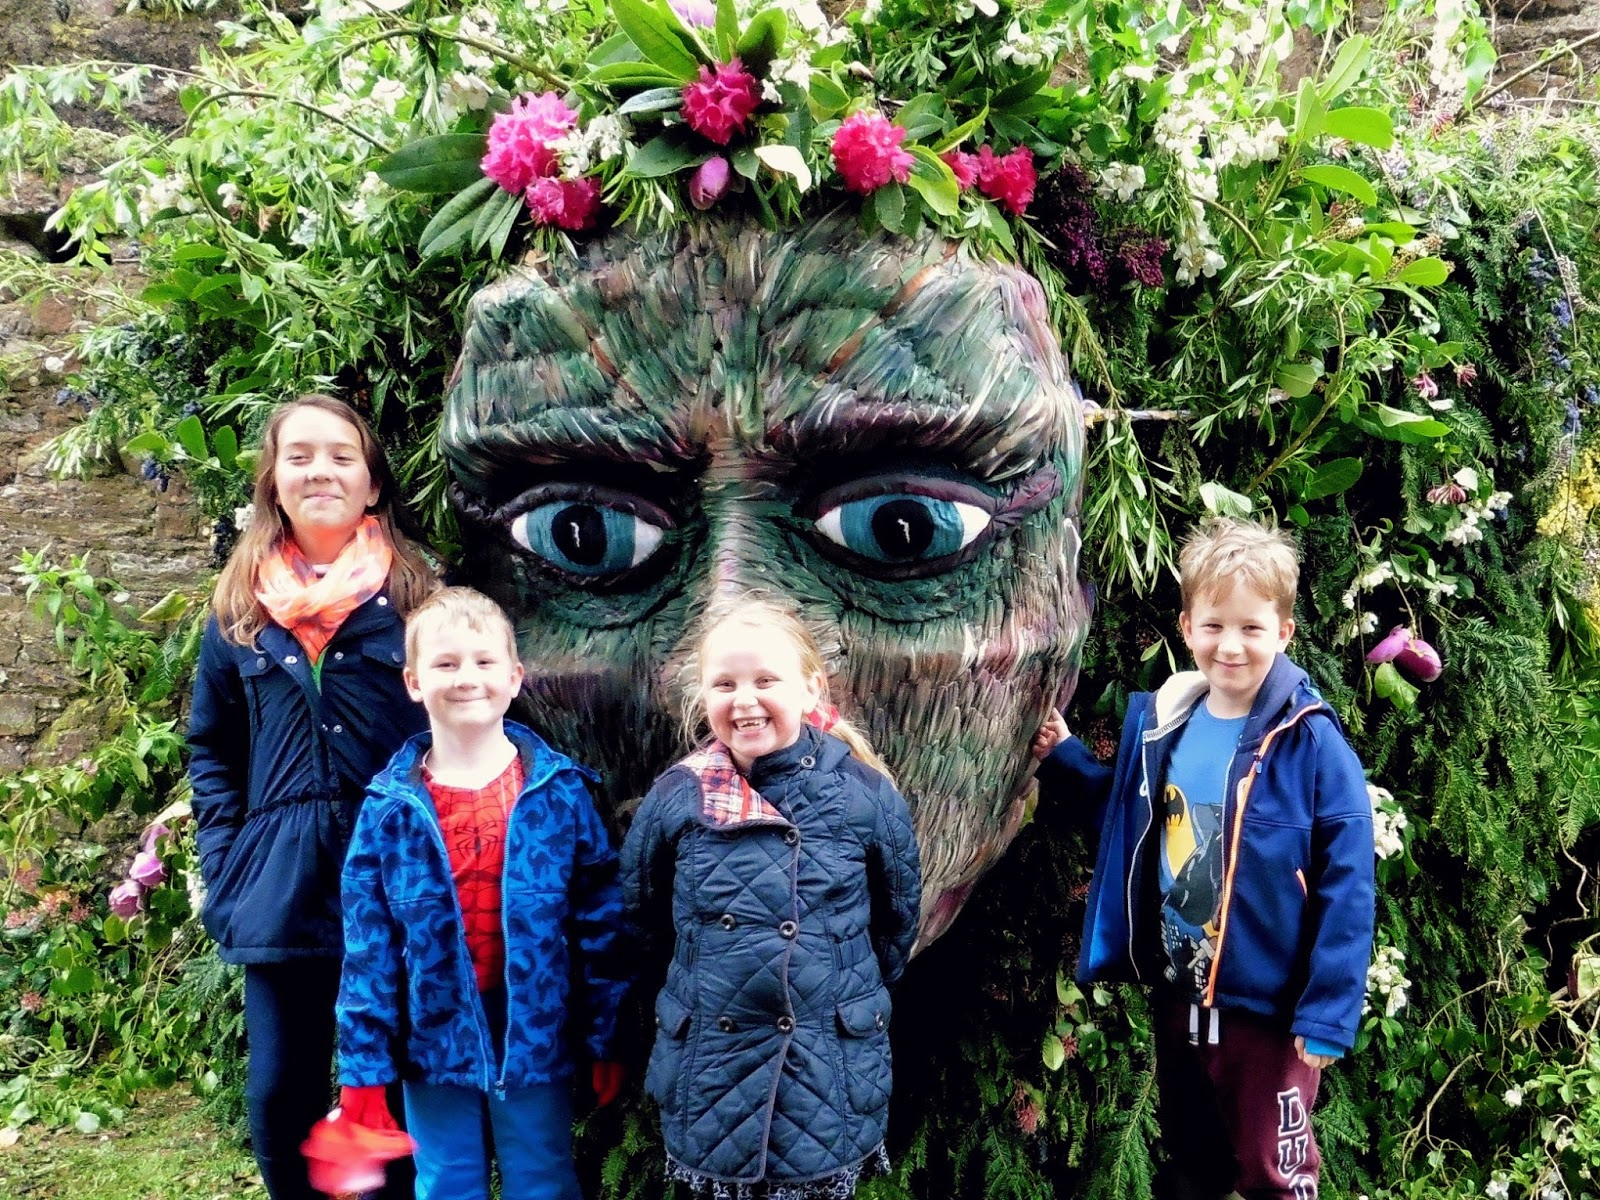 green man, festival, mount edgcumbe, plymouth, cornwall, flowers, spring, face, park, estate,